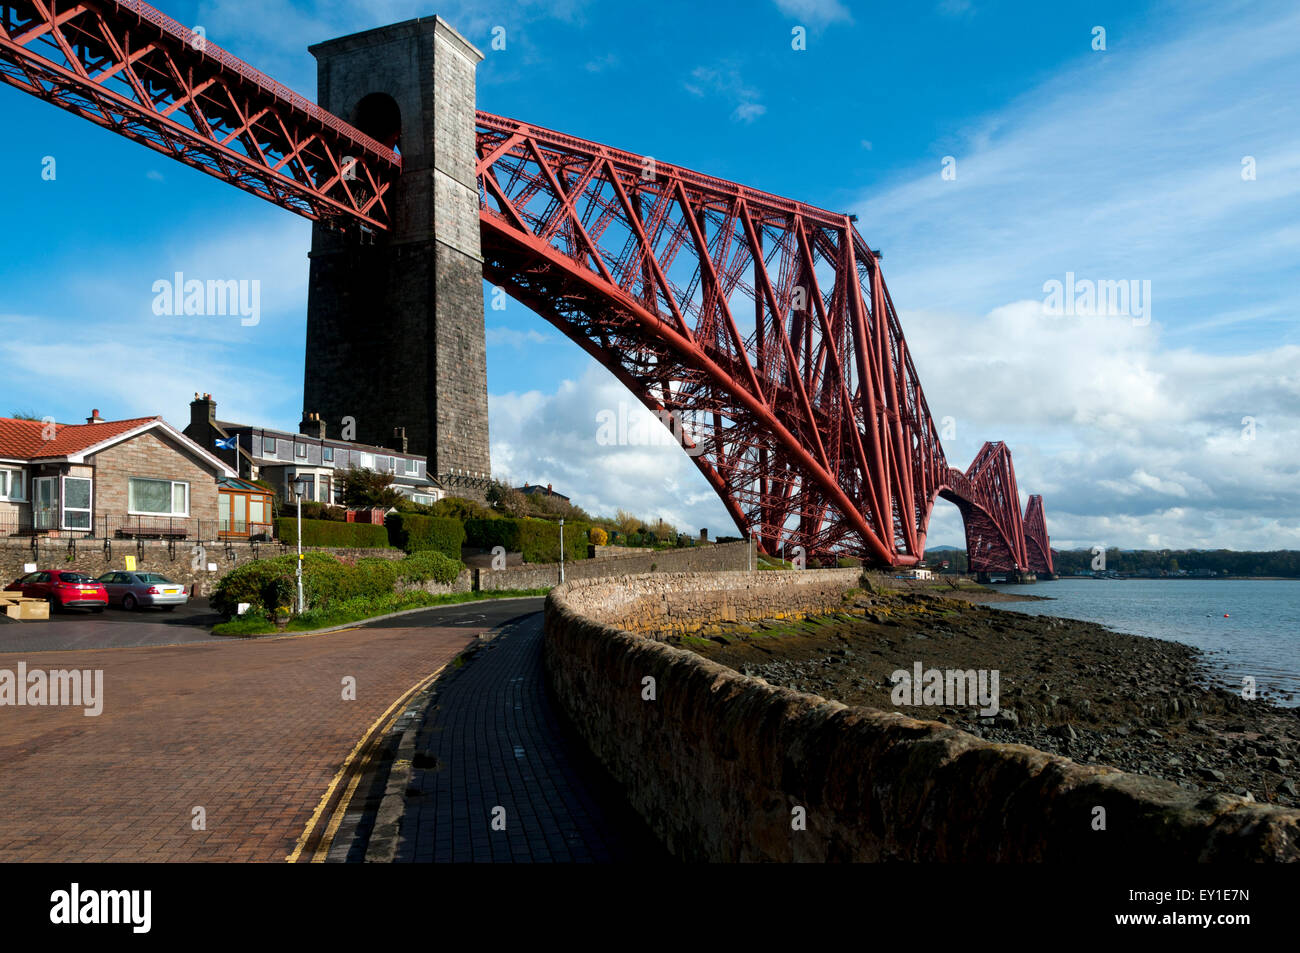 The Forth Rail Bridge, over the Firth of Forth, from North Queensferry, near Edinburgh, Scotland, UK Stock Photo